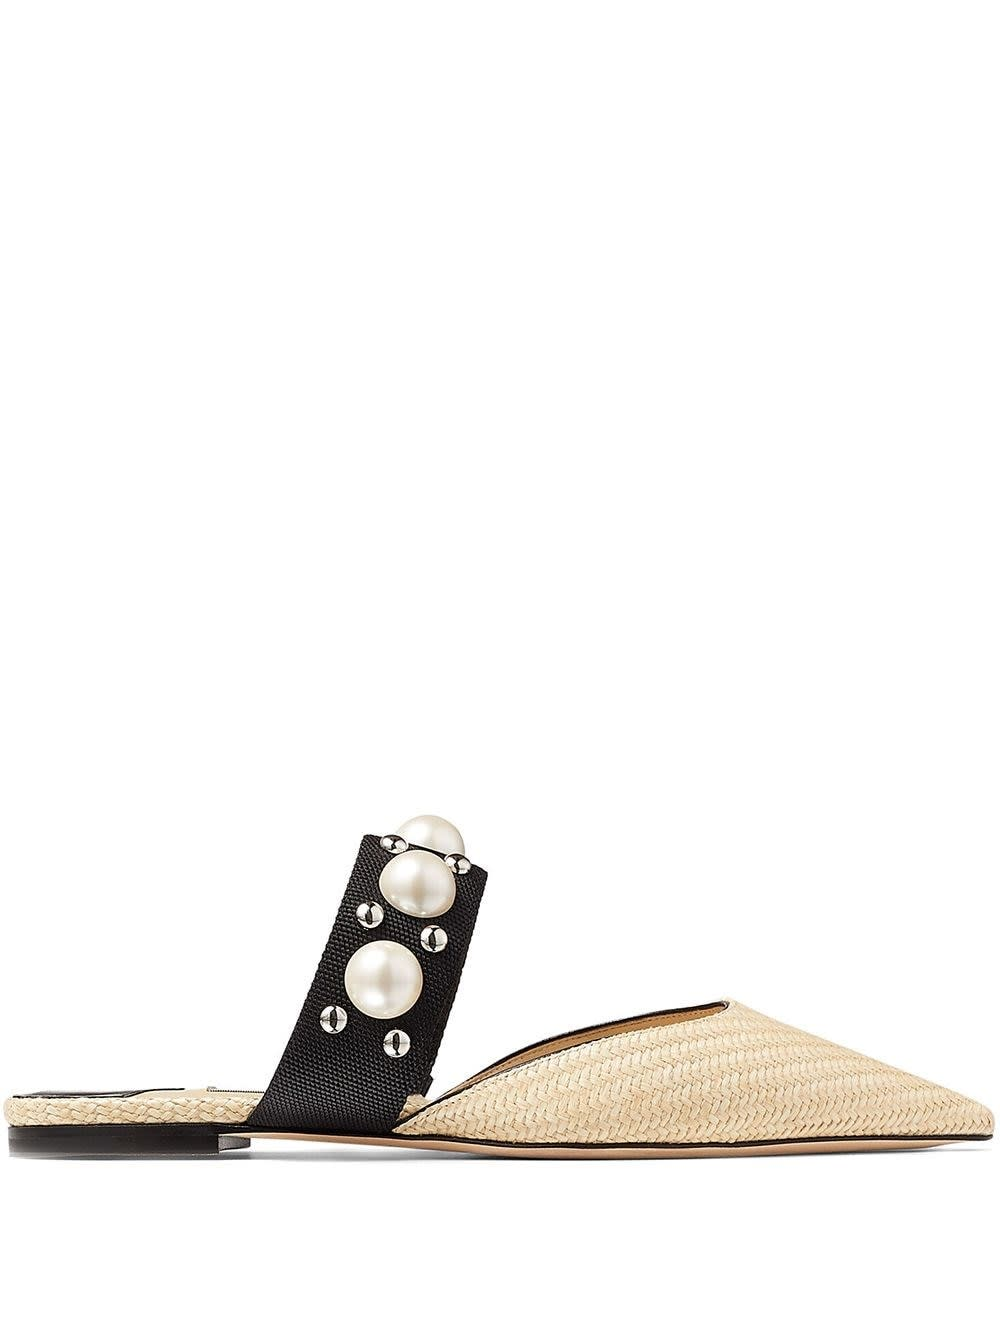 Buy Jimmy Choo Bassette Mules In Raffia With Pearl Insert online, shop Jimmy Choo shoes with free shipping